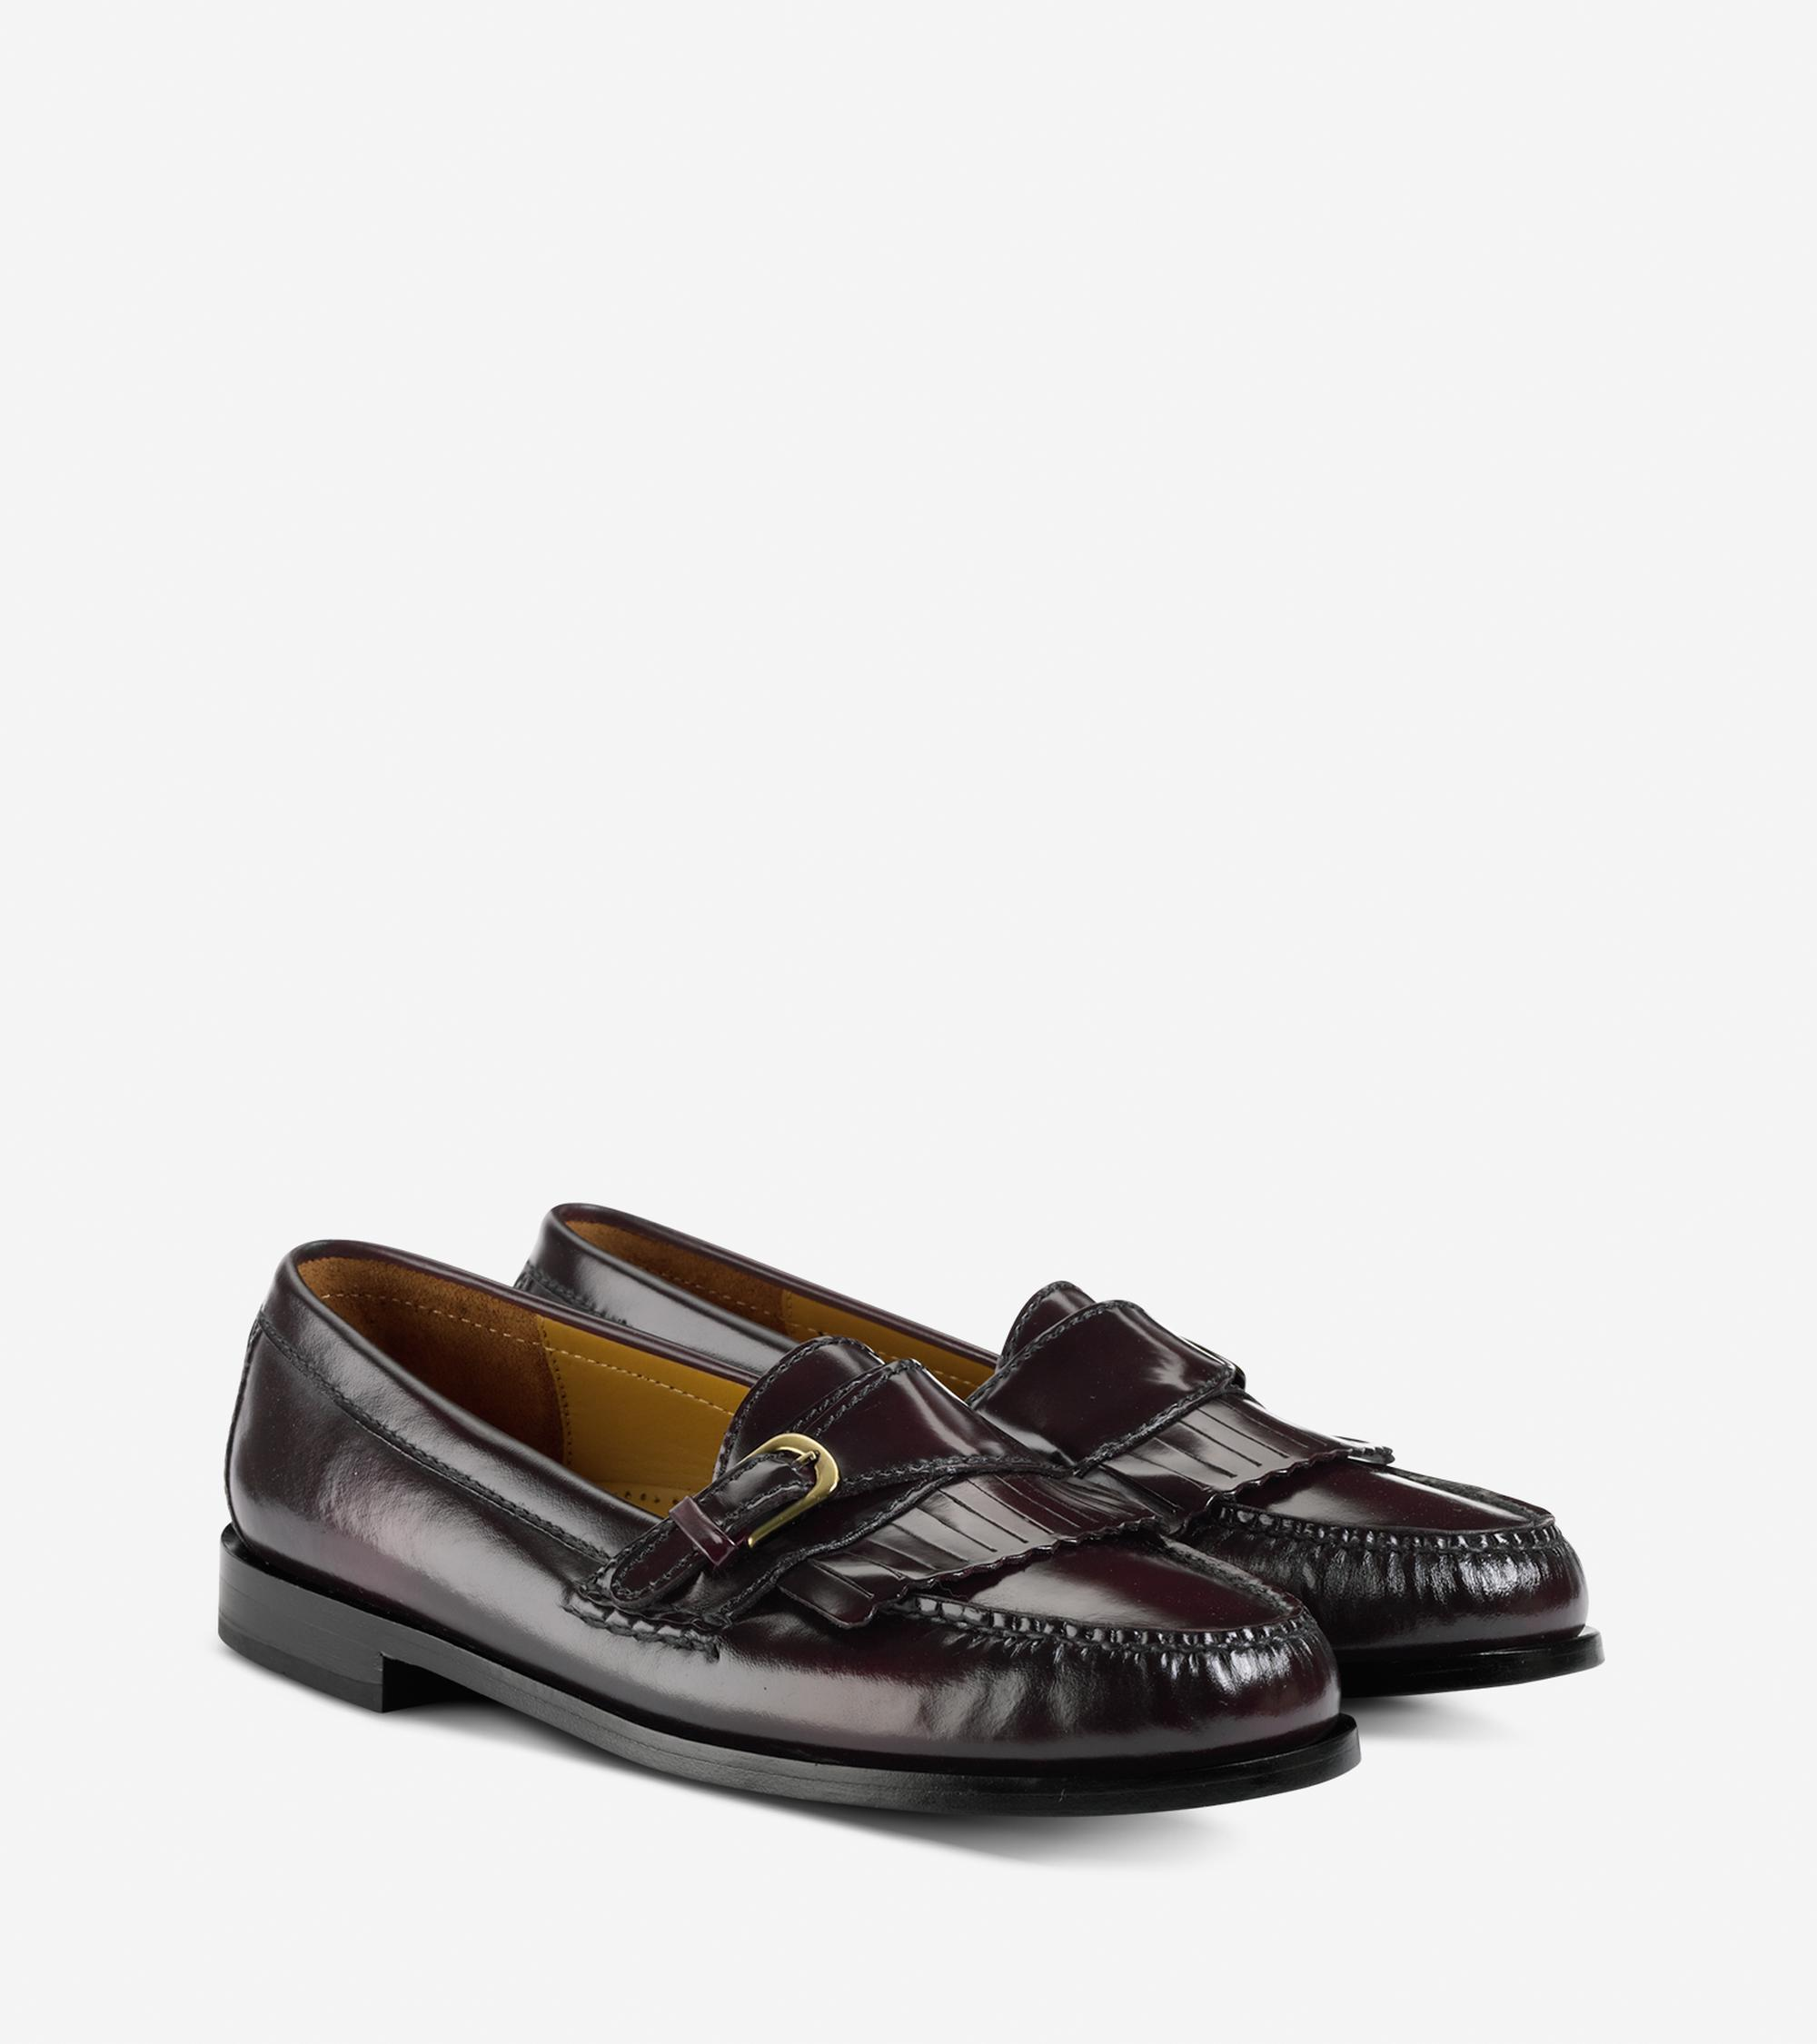 pinch hindu single men ★ cole haan 'pinch gotham' penny loafer (men) @ on sale mens loafers amp slip ons, save 30-70% off get free no-hassle 90-day returns [cole haan 'pinch gotham' penny.